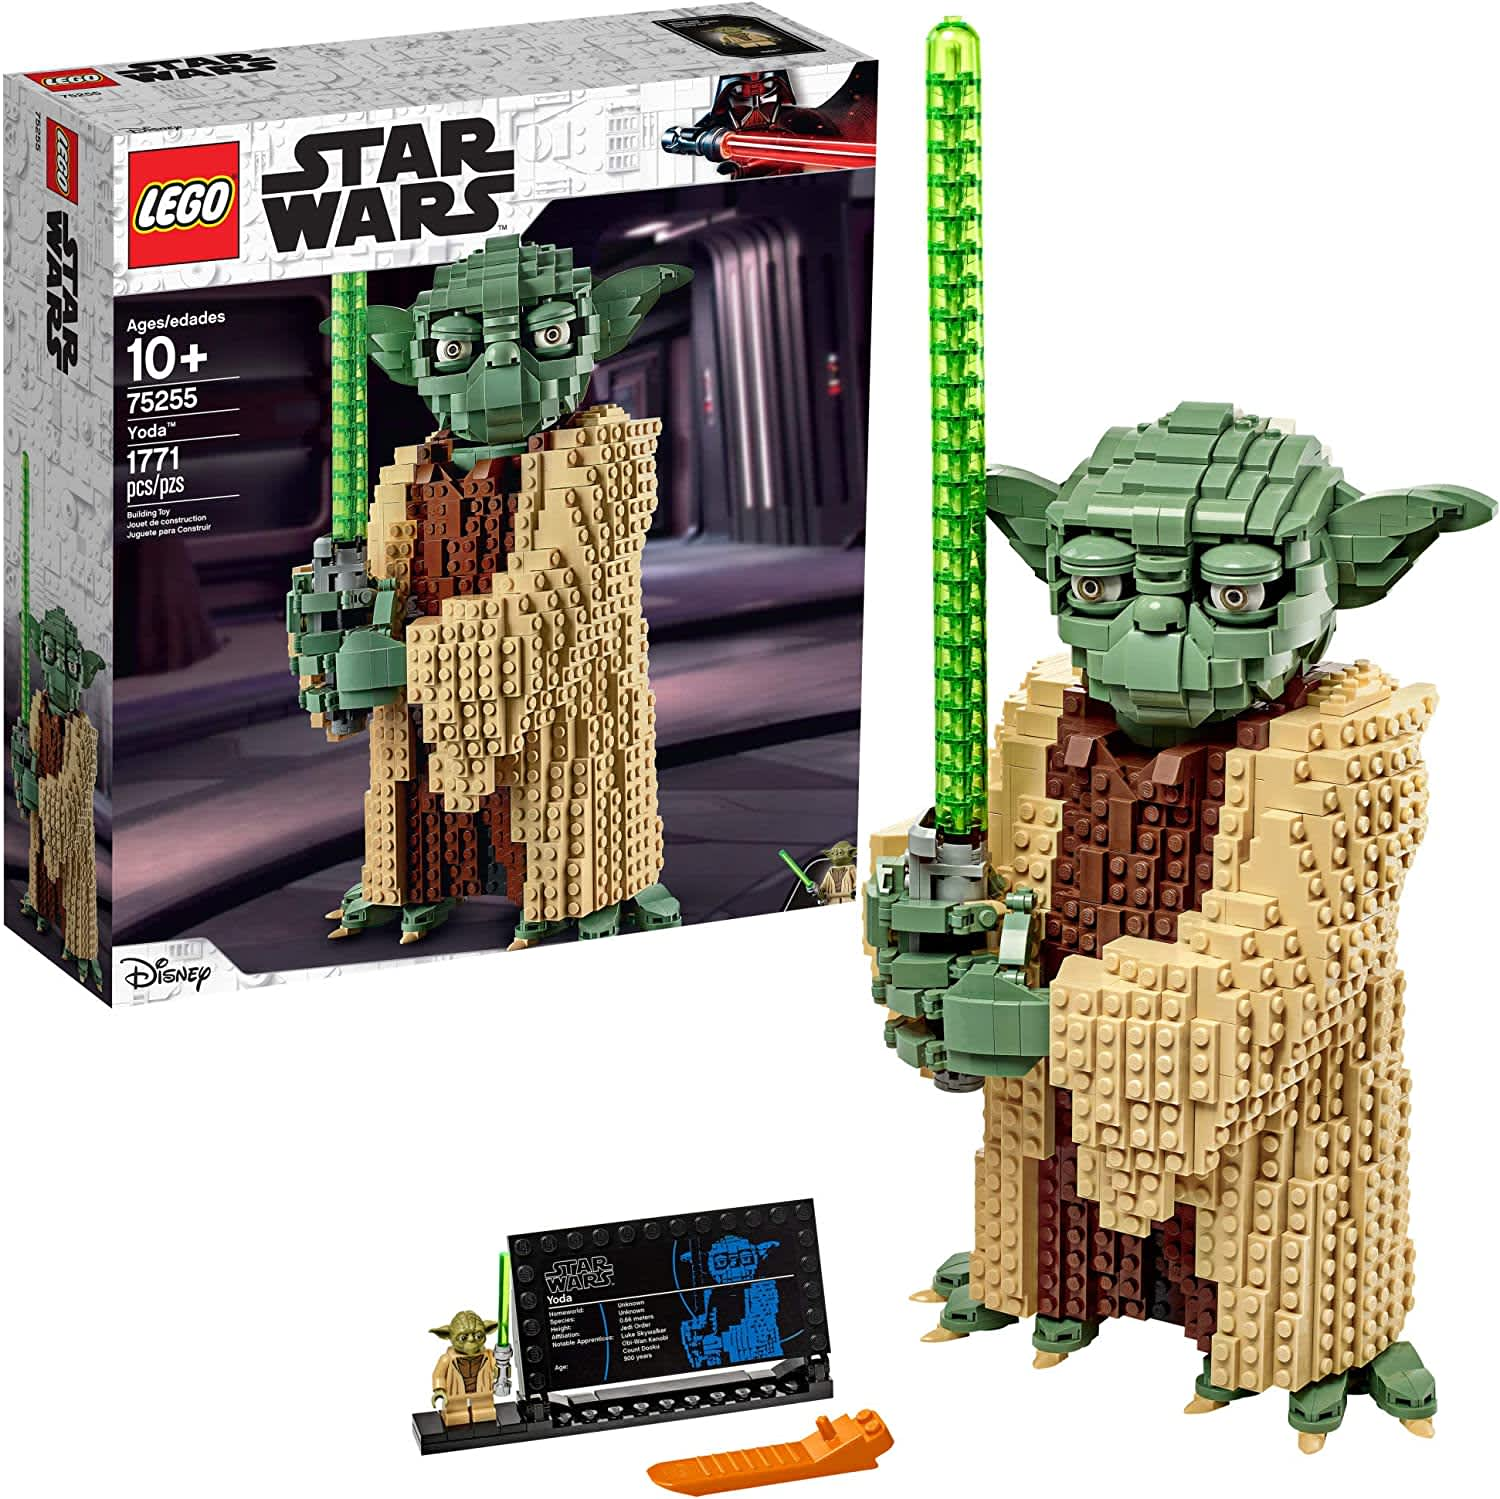 LEGO Star Wars: Attack of the Clones Yoda Building Kit